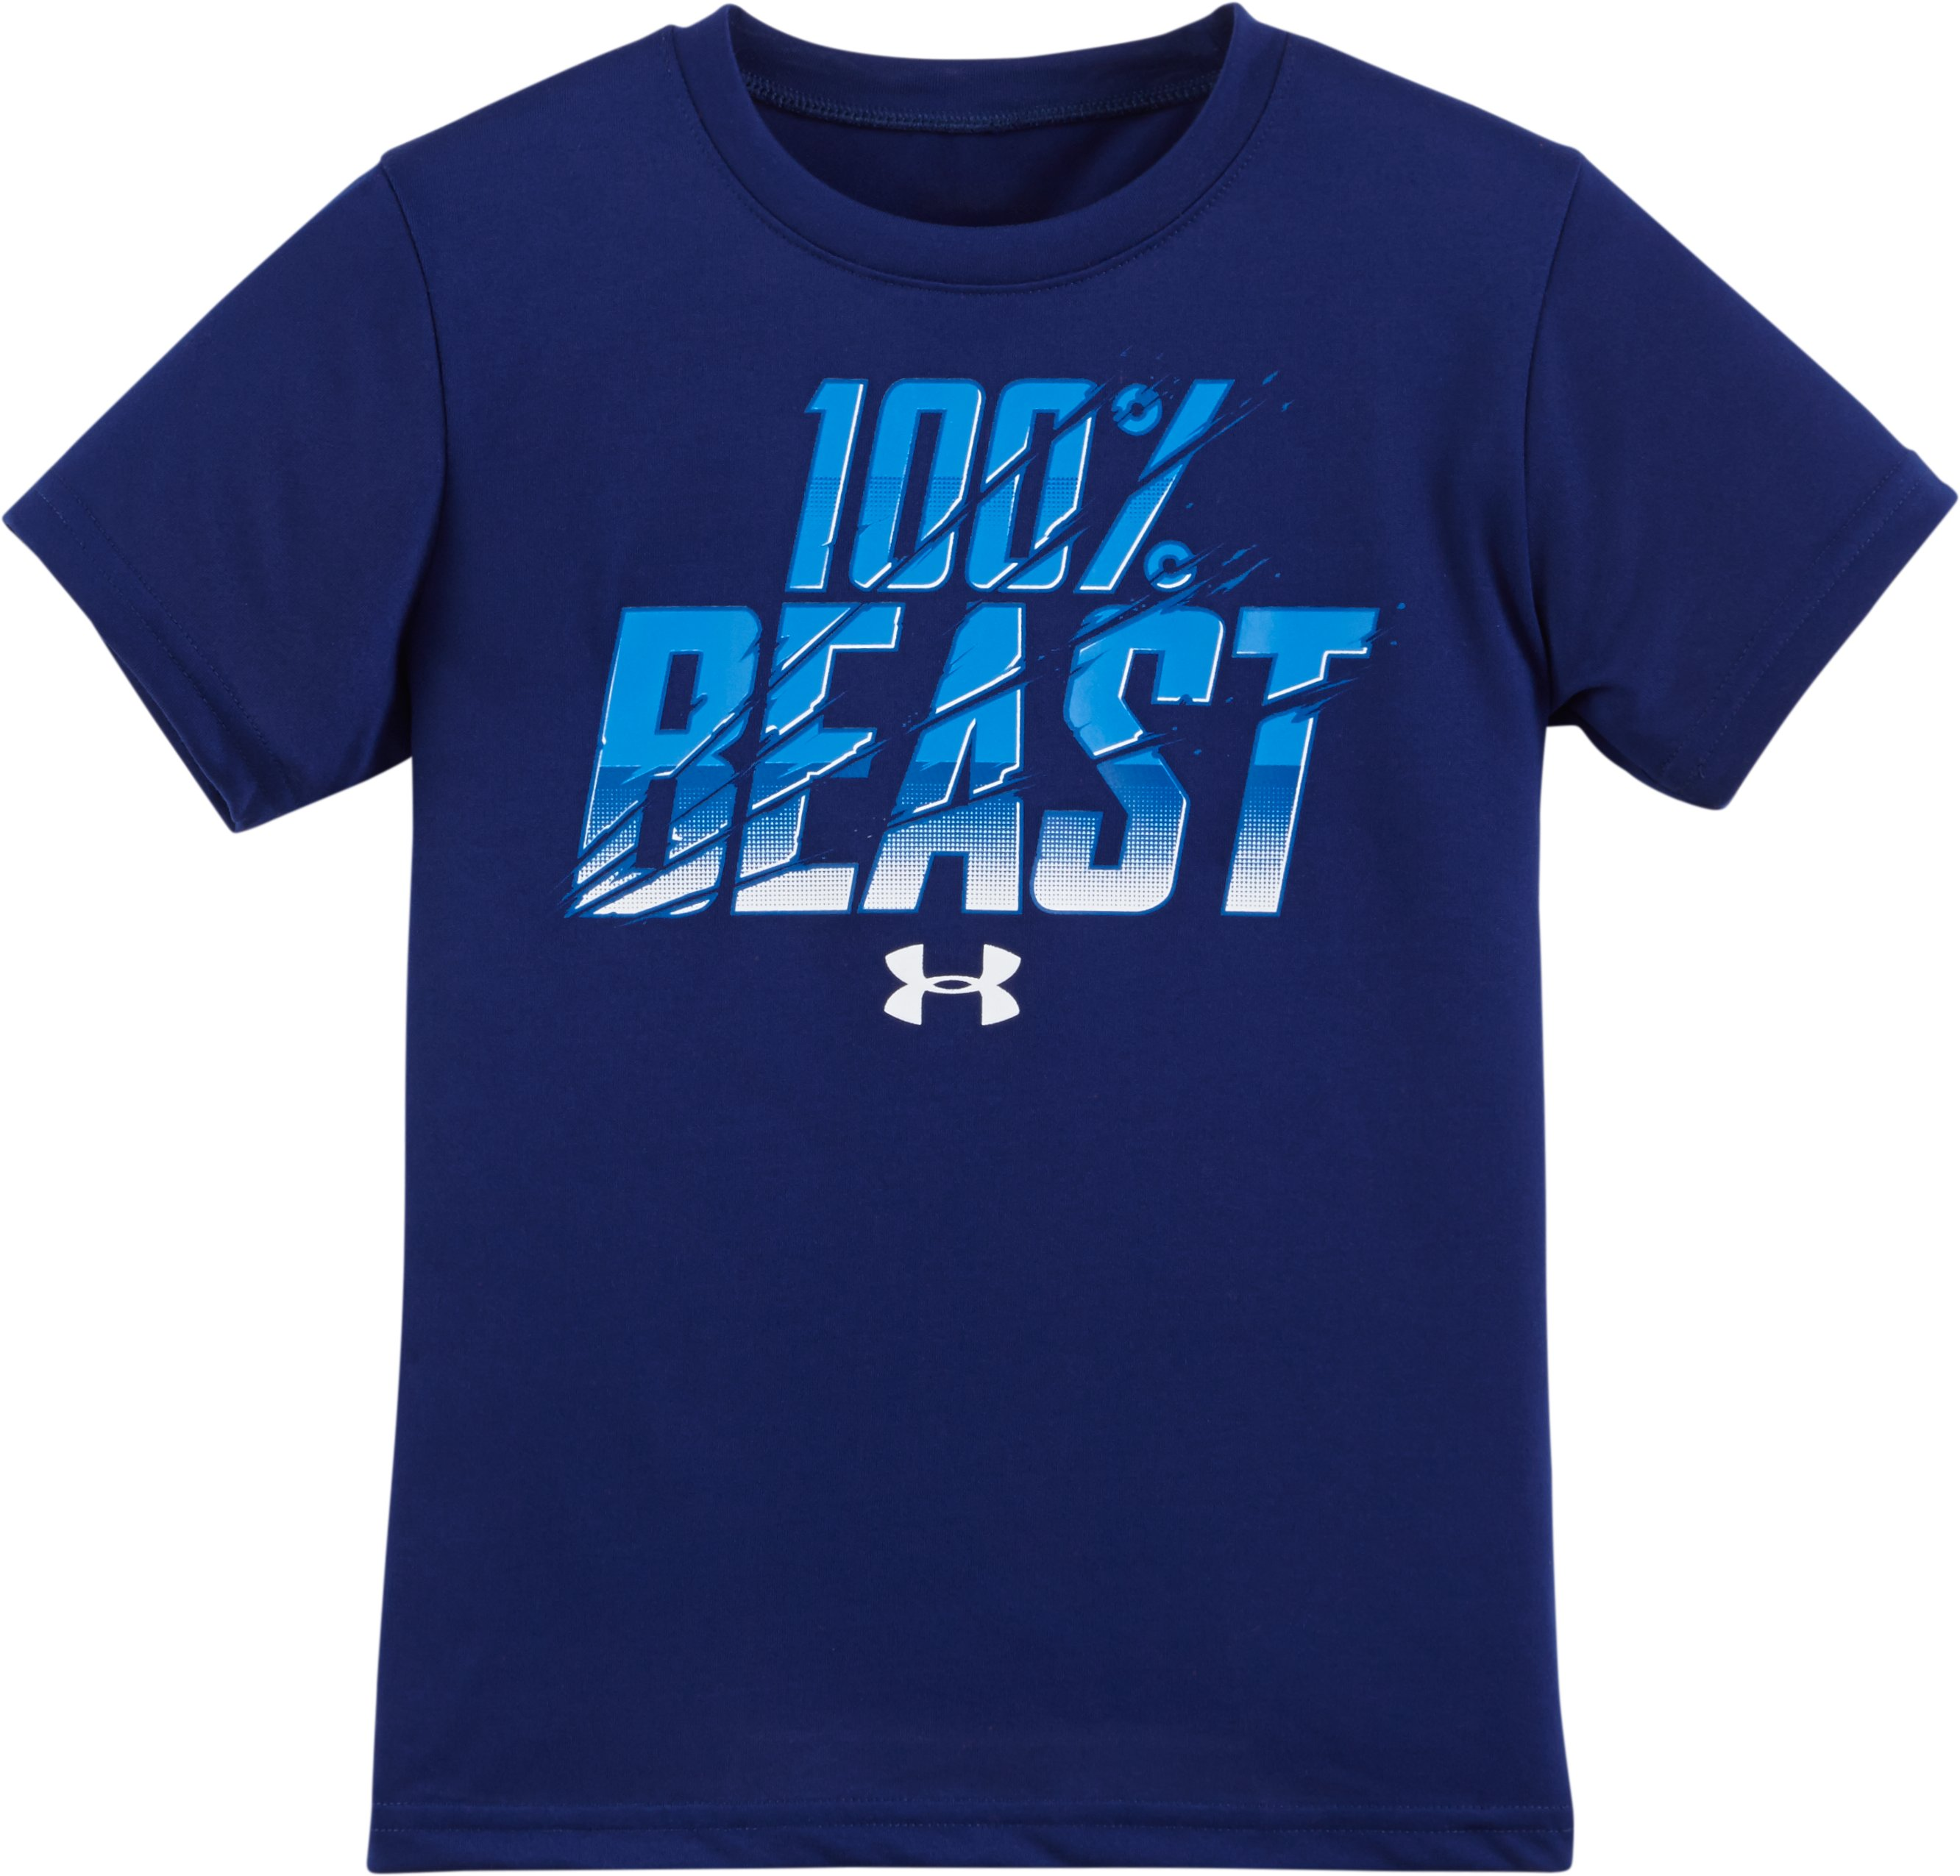 Boys' Toddler UA 100% Beast Short Sleeve T-Shirt, Caspian